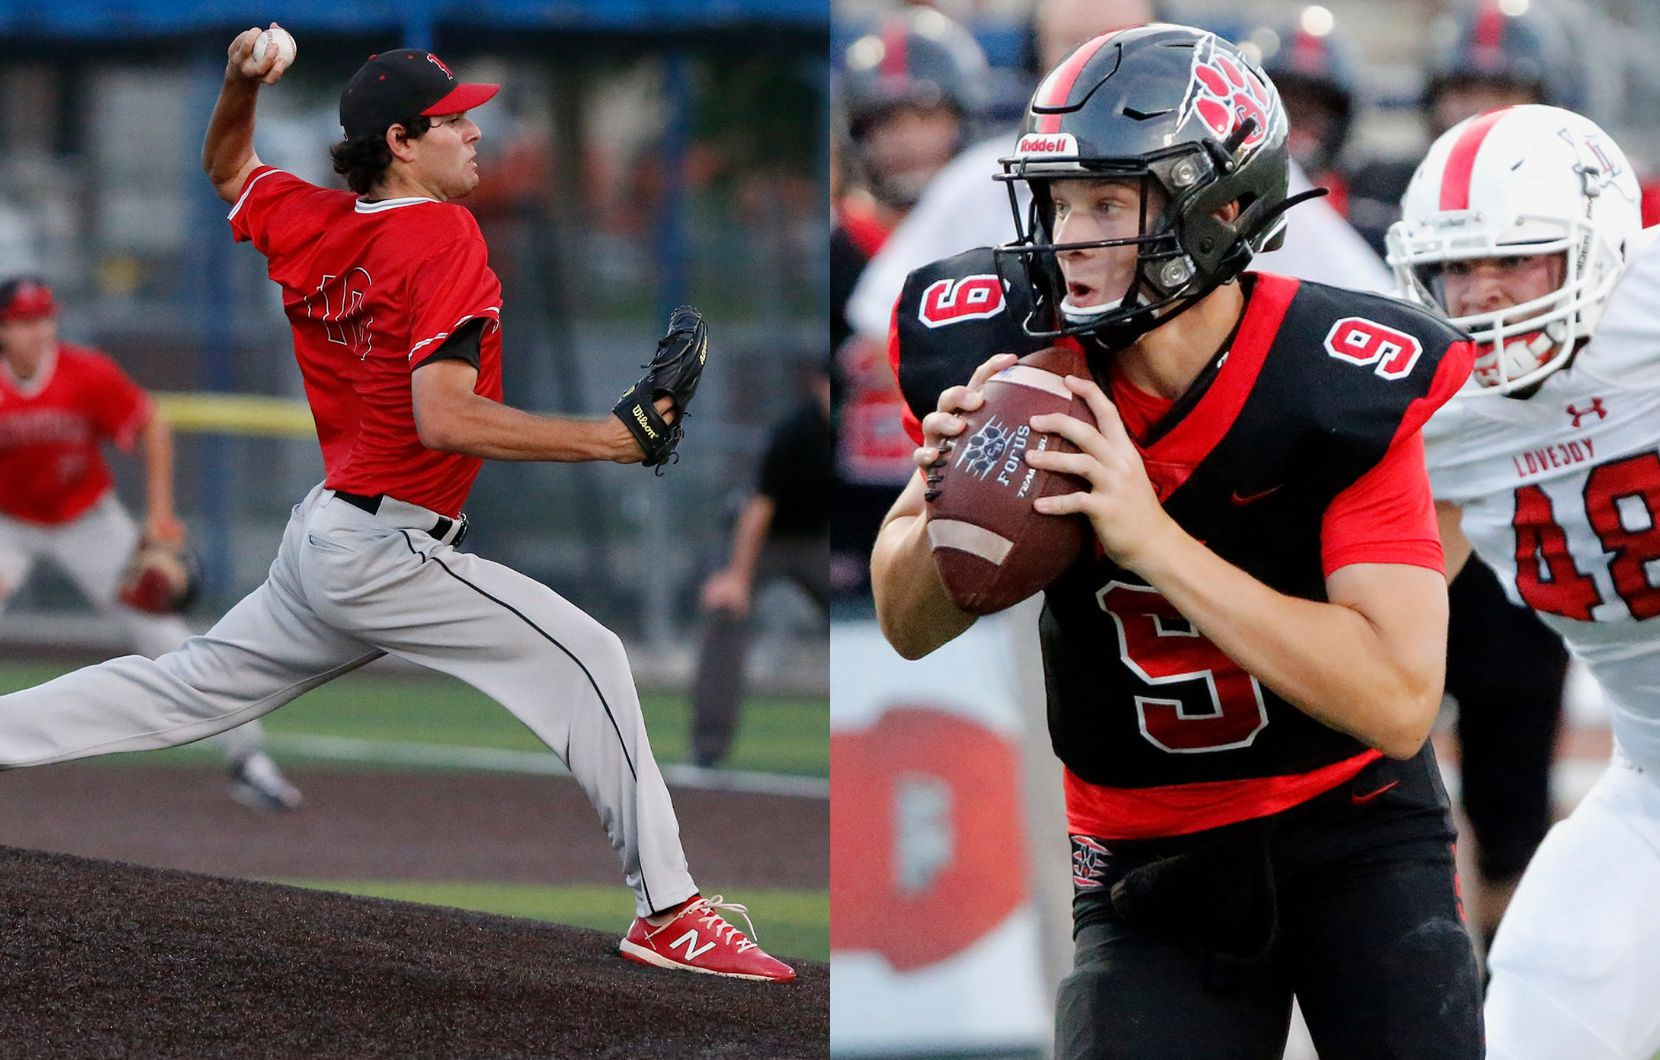 From left to right: Hillcrest High School pitcher Ryan Prager and Colleyville Heritage High School pitcher AJ Smith-Shawver, playing quarterback.